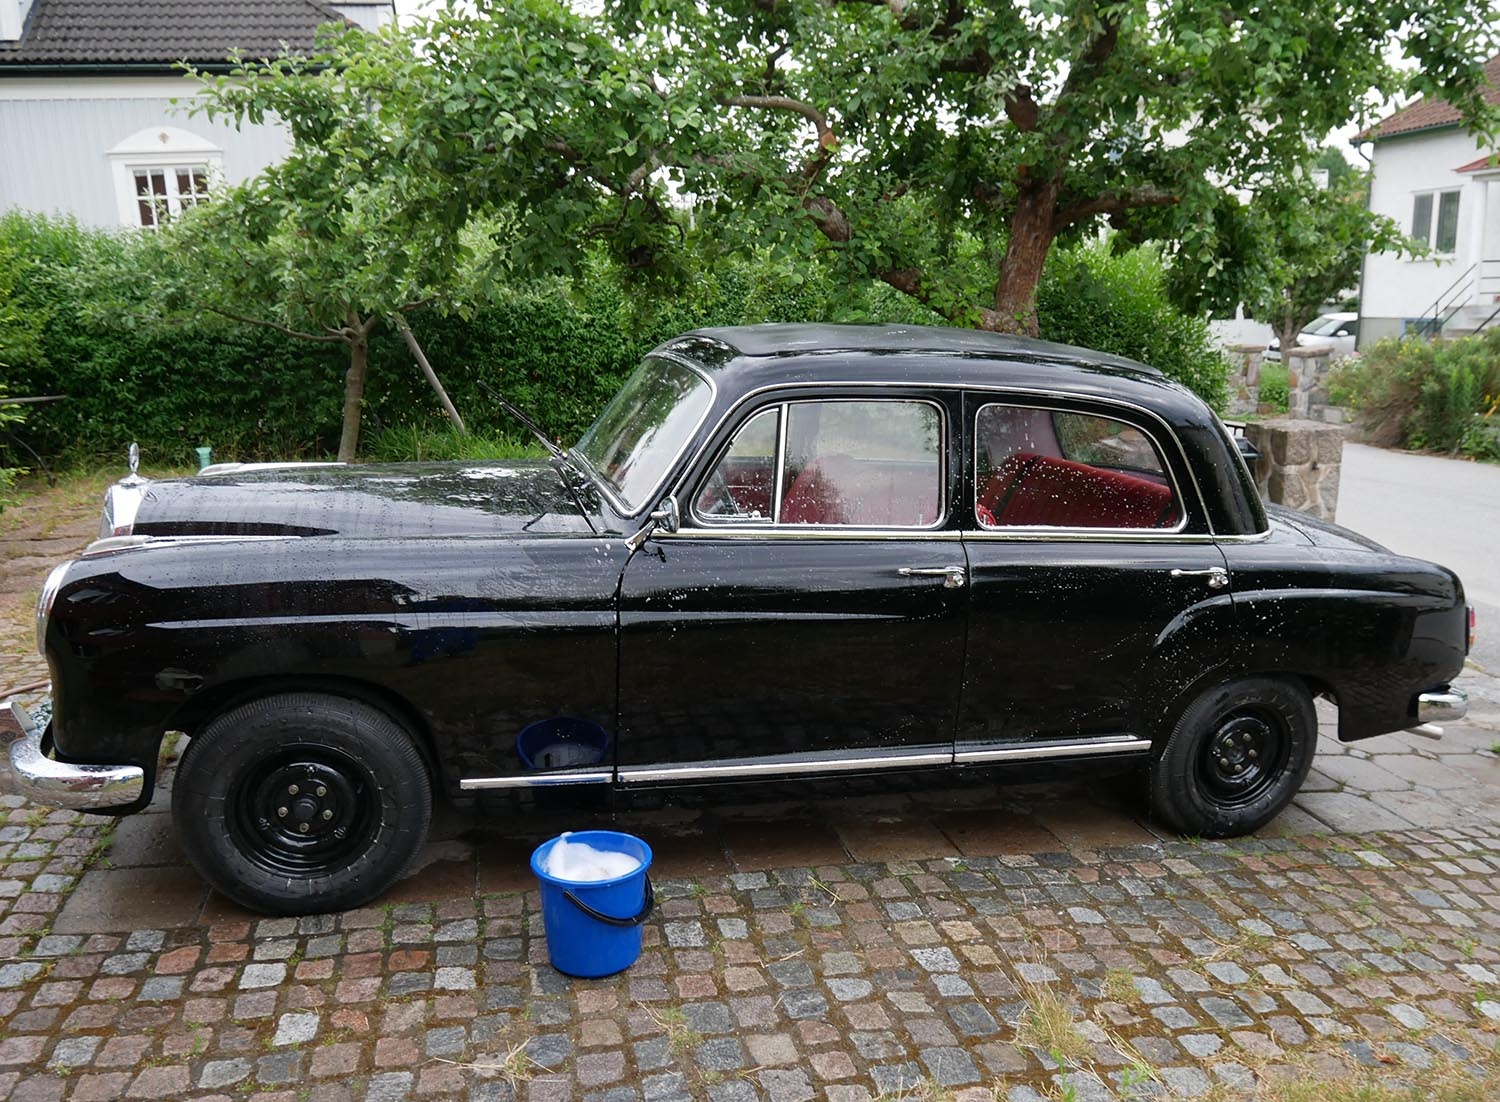 The Mercedes-Benz 219 got its final wash before the first Vehicle inspection in decades